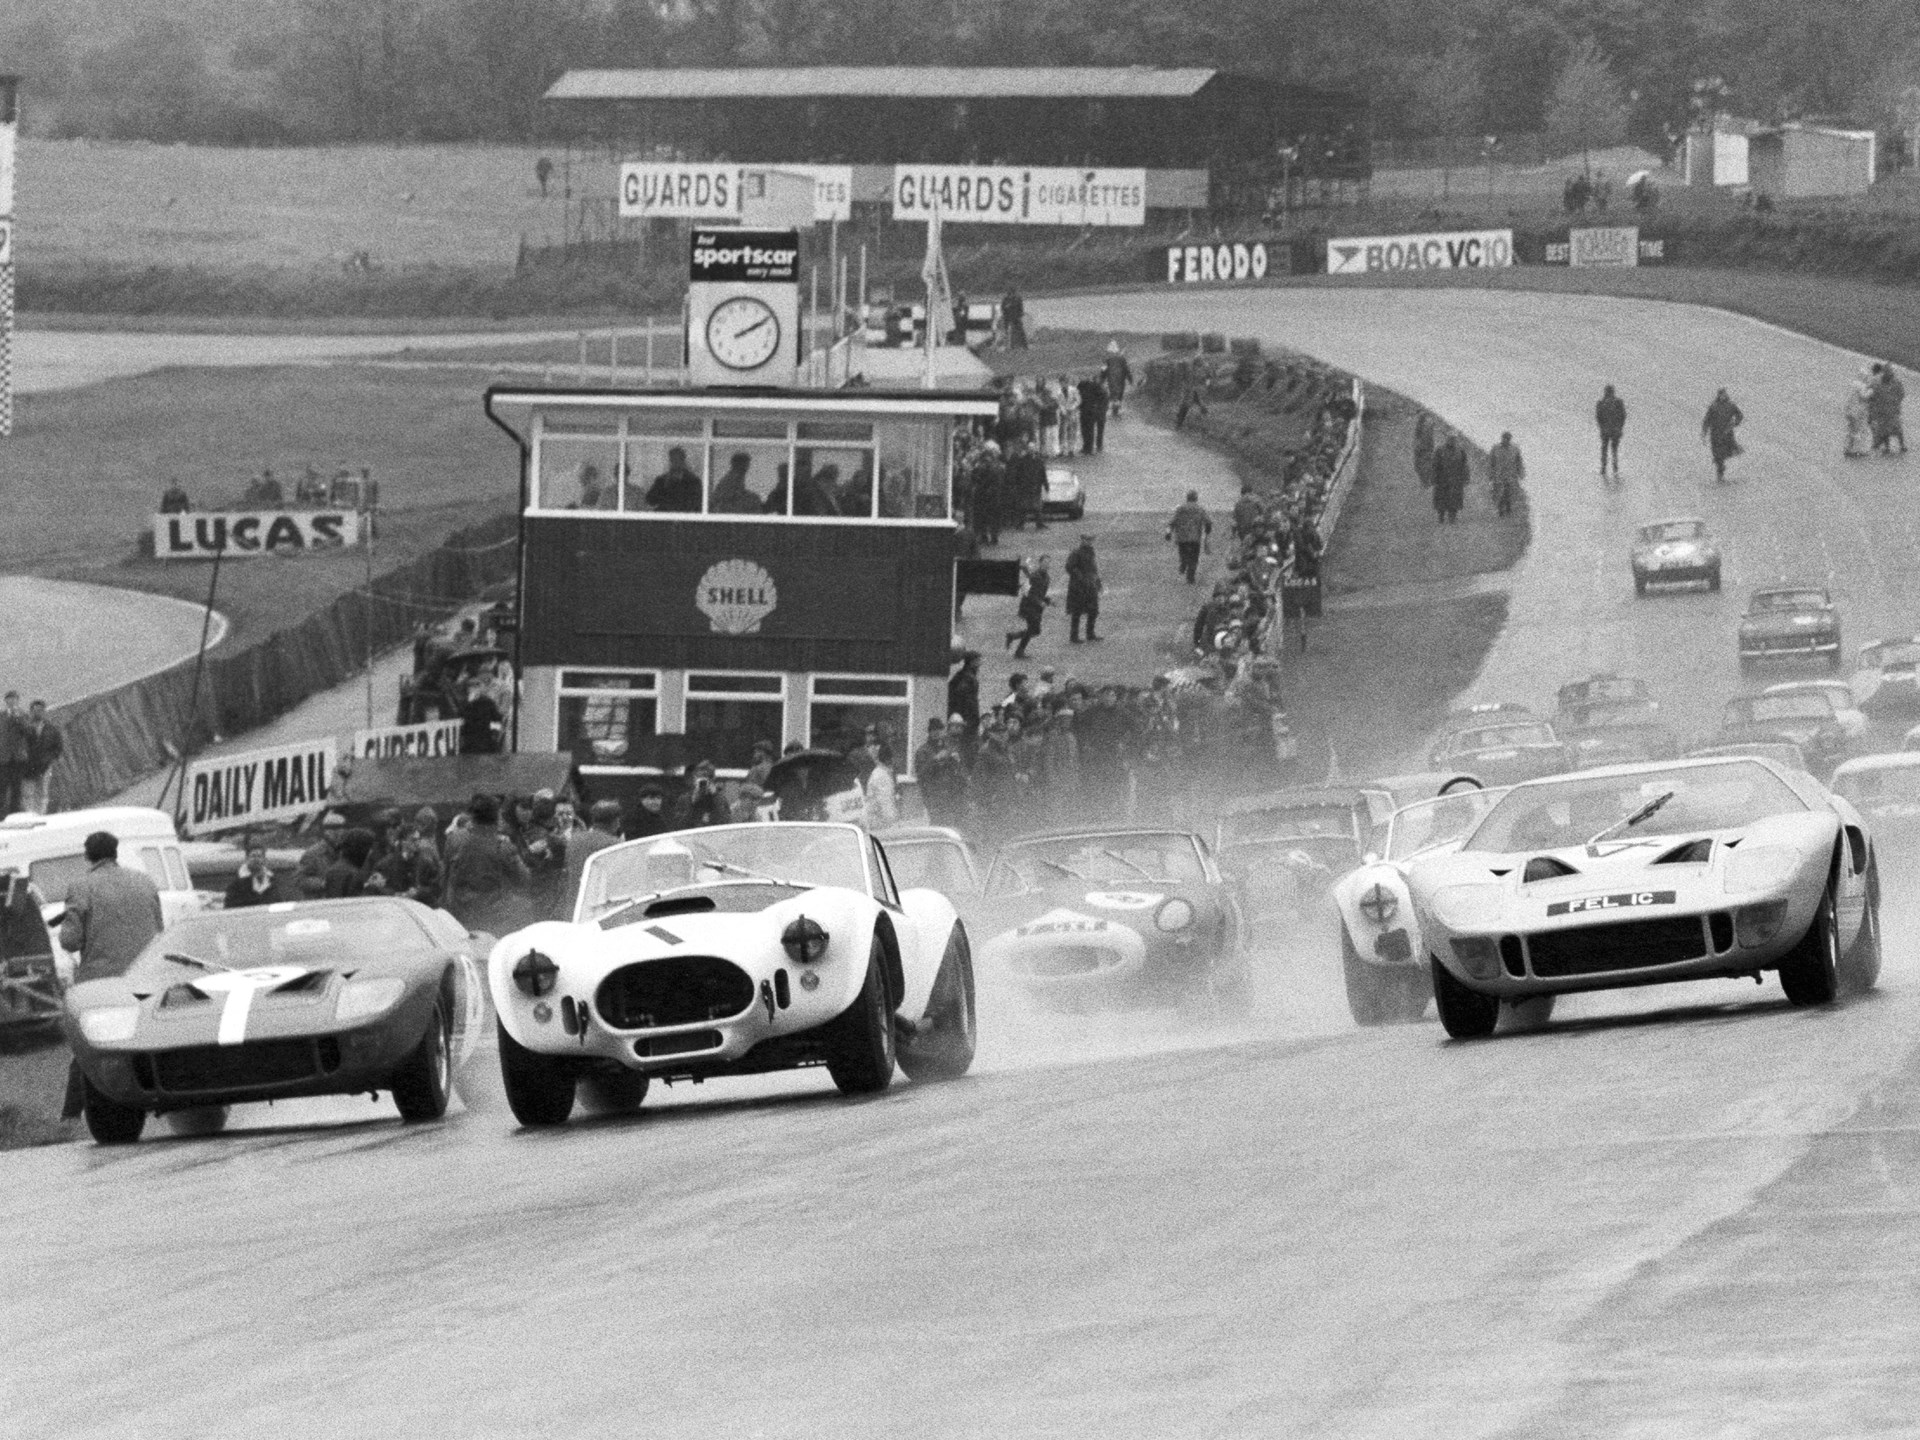 The team of Bob Bondurant and David Piper lead the way at Brands Hatch, 1966.